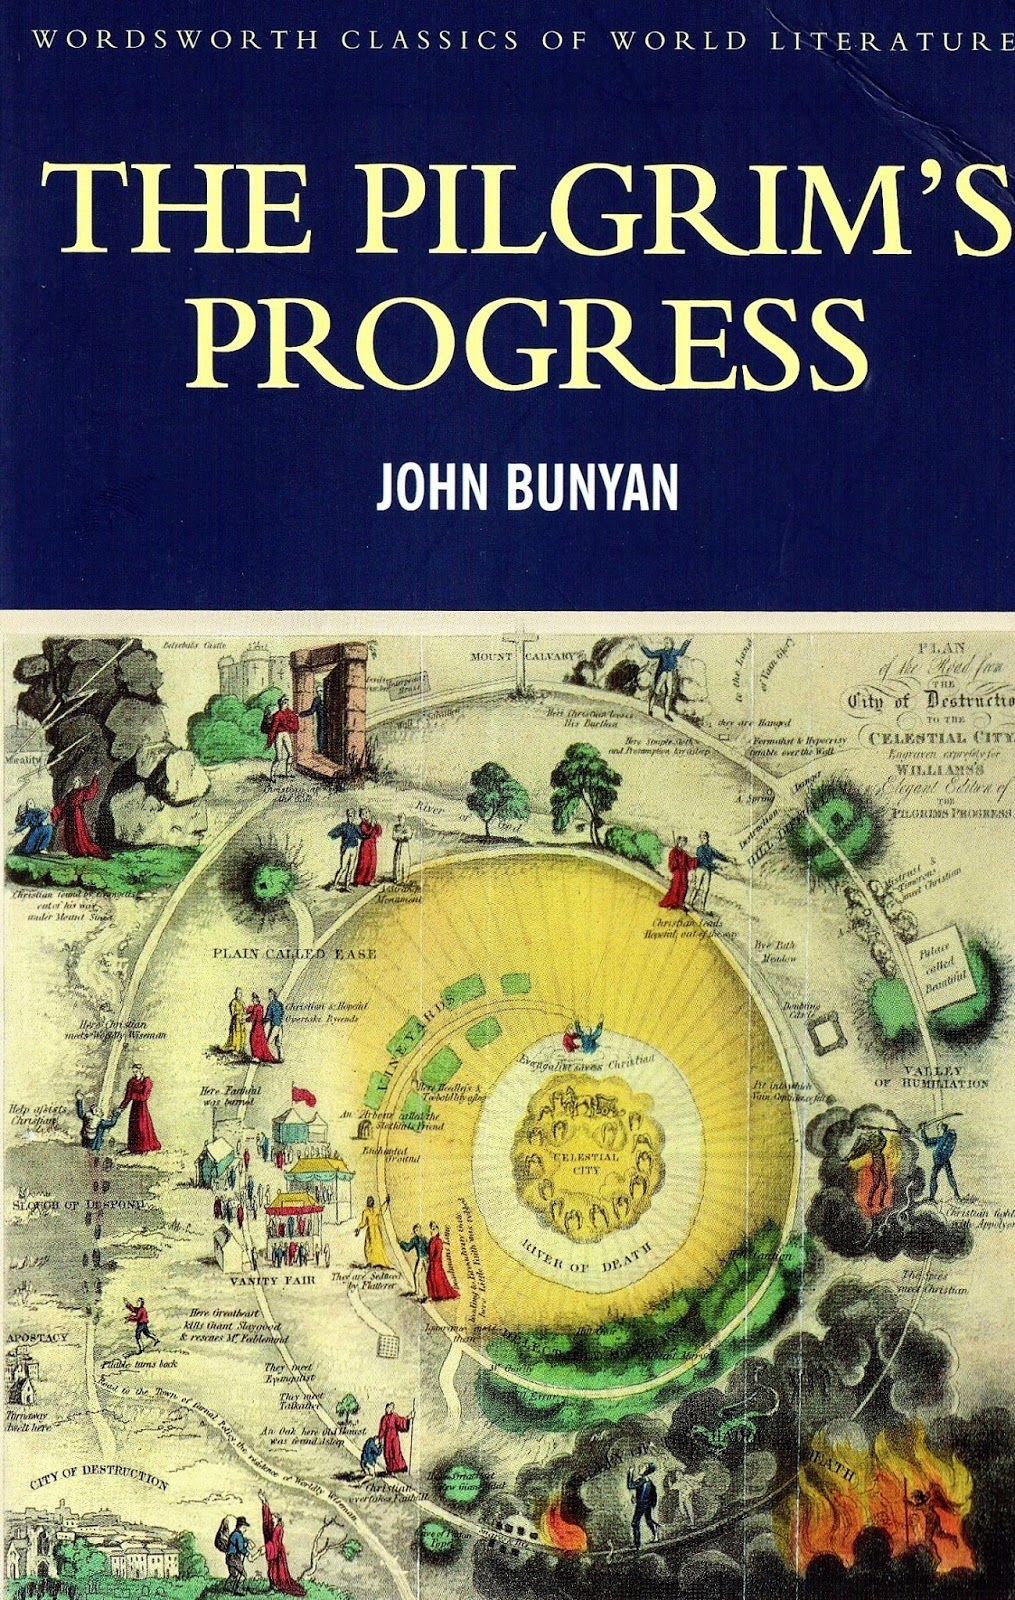 John Bunyan The Pilgrim's Progress